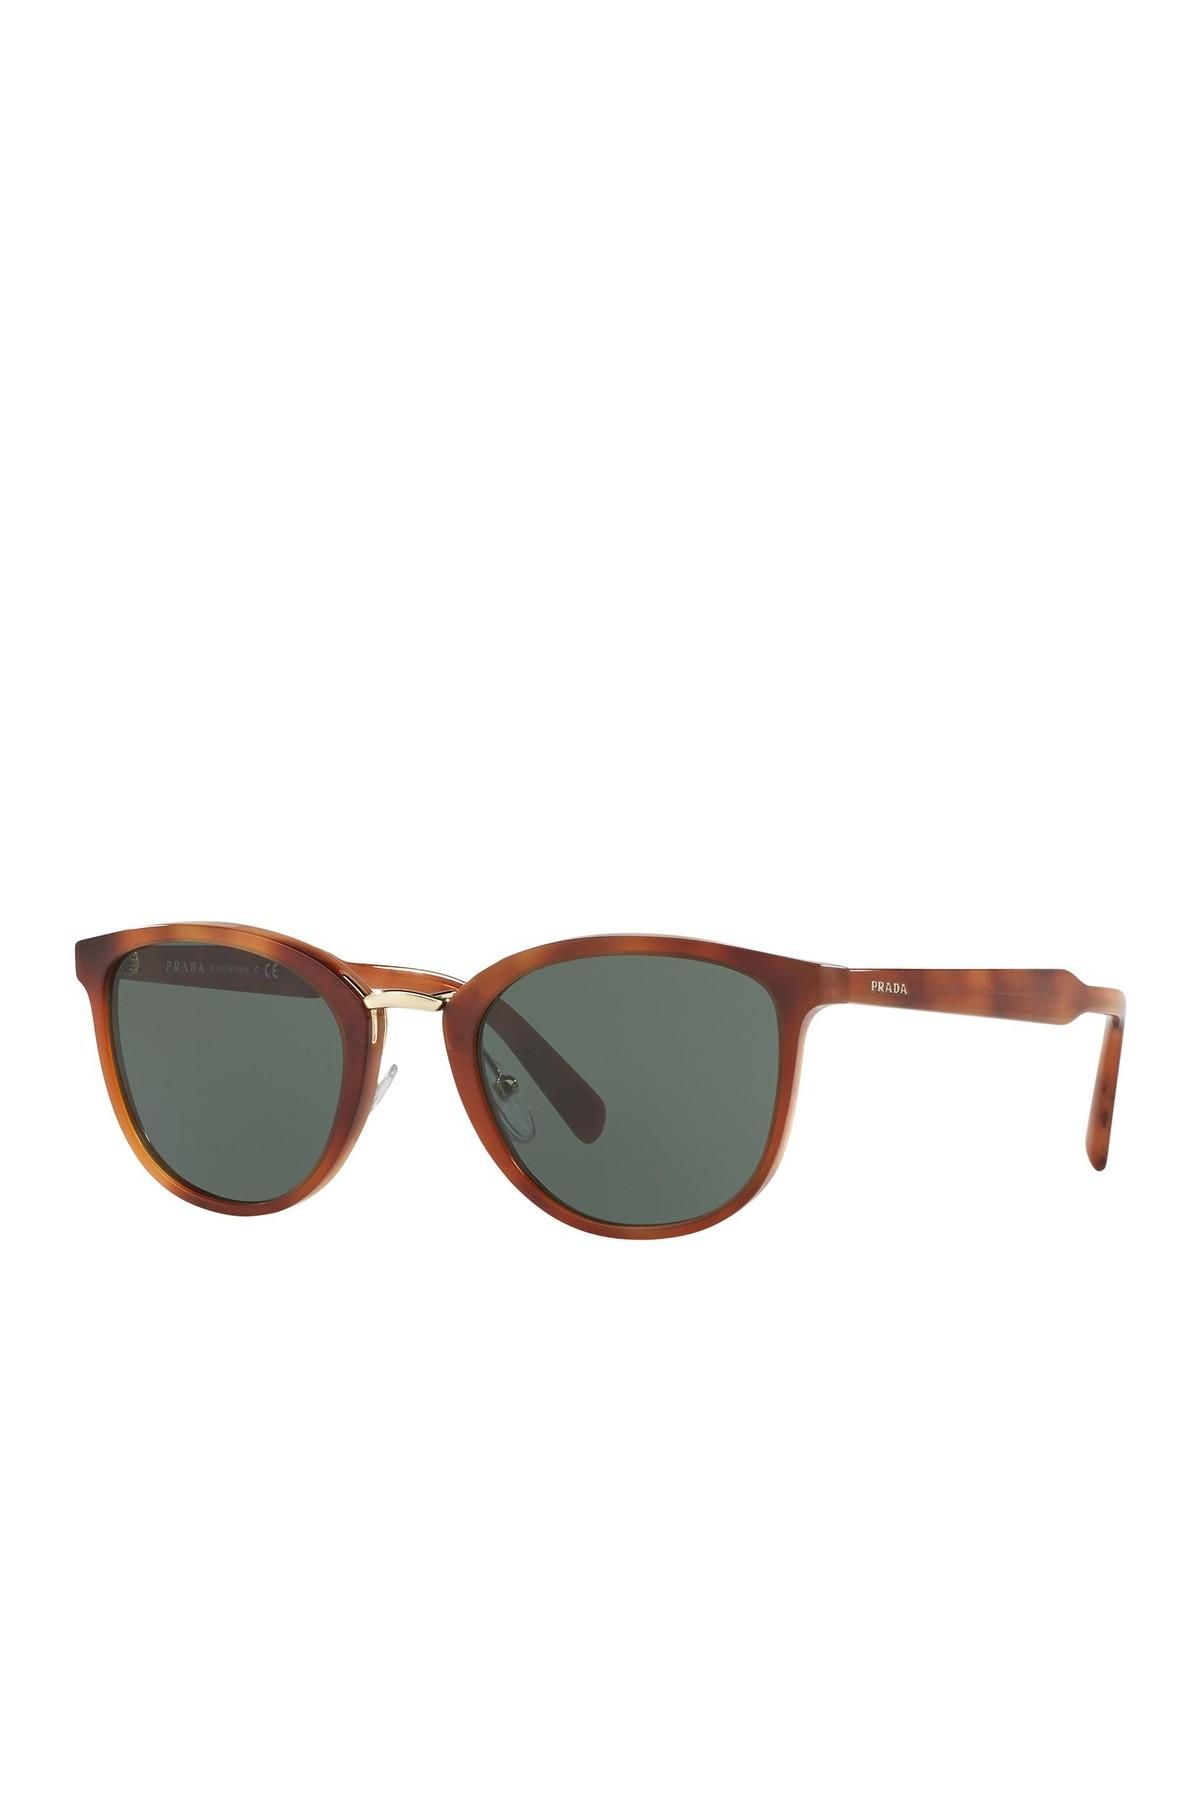 321256ab307f2 Prada 22ss Round Sunglasses in Brown for Men - Lyst